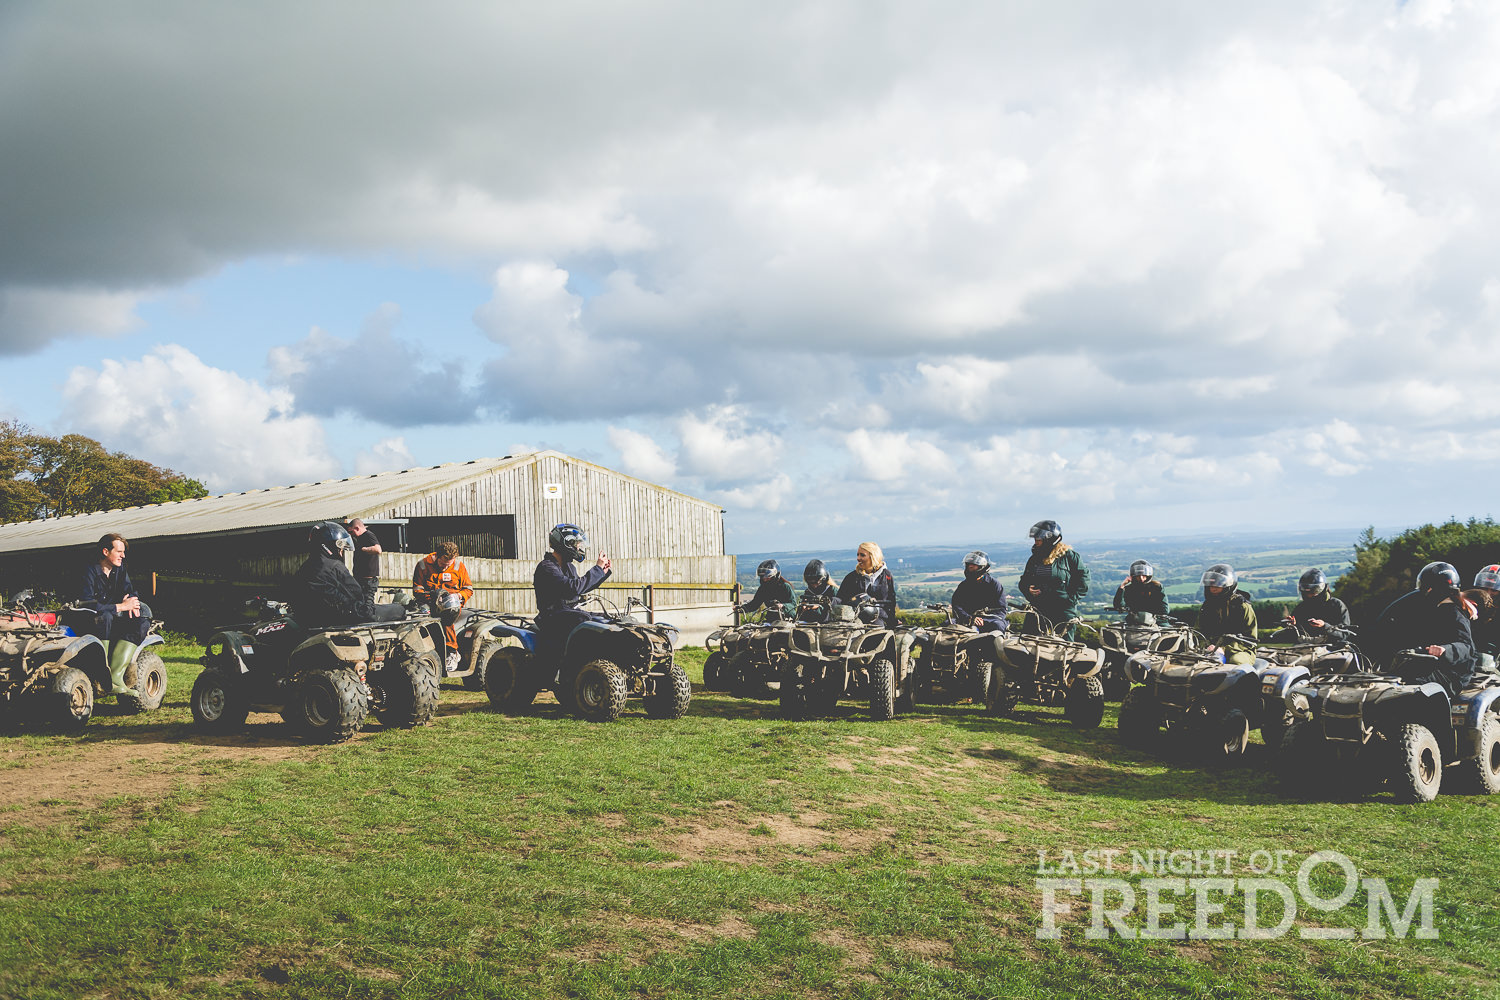 Lots of people sitting on quad bikes in a field, with a cloudy sky above them